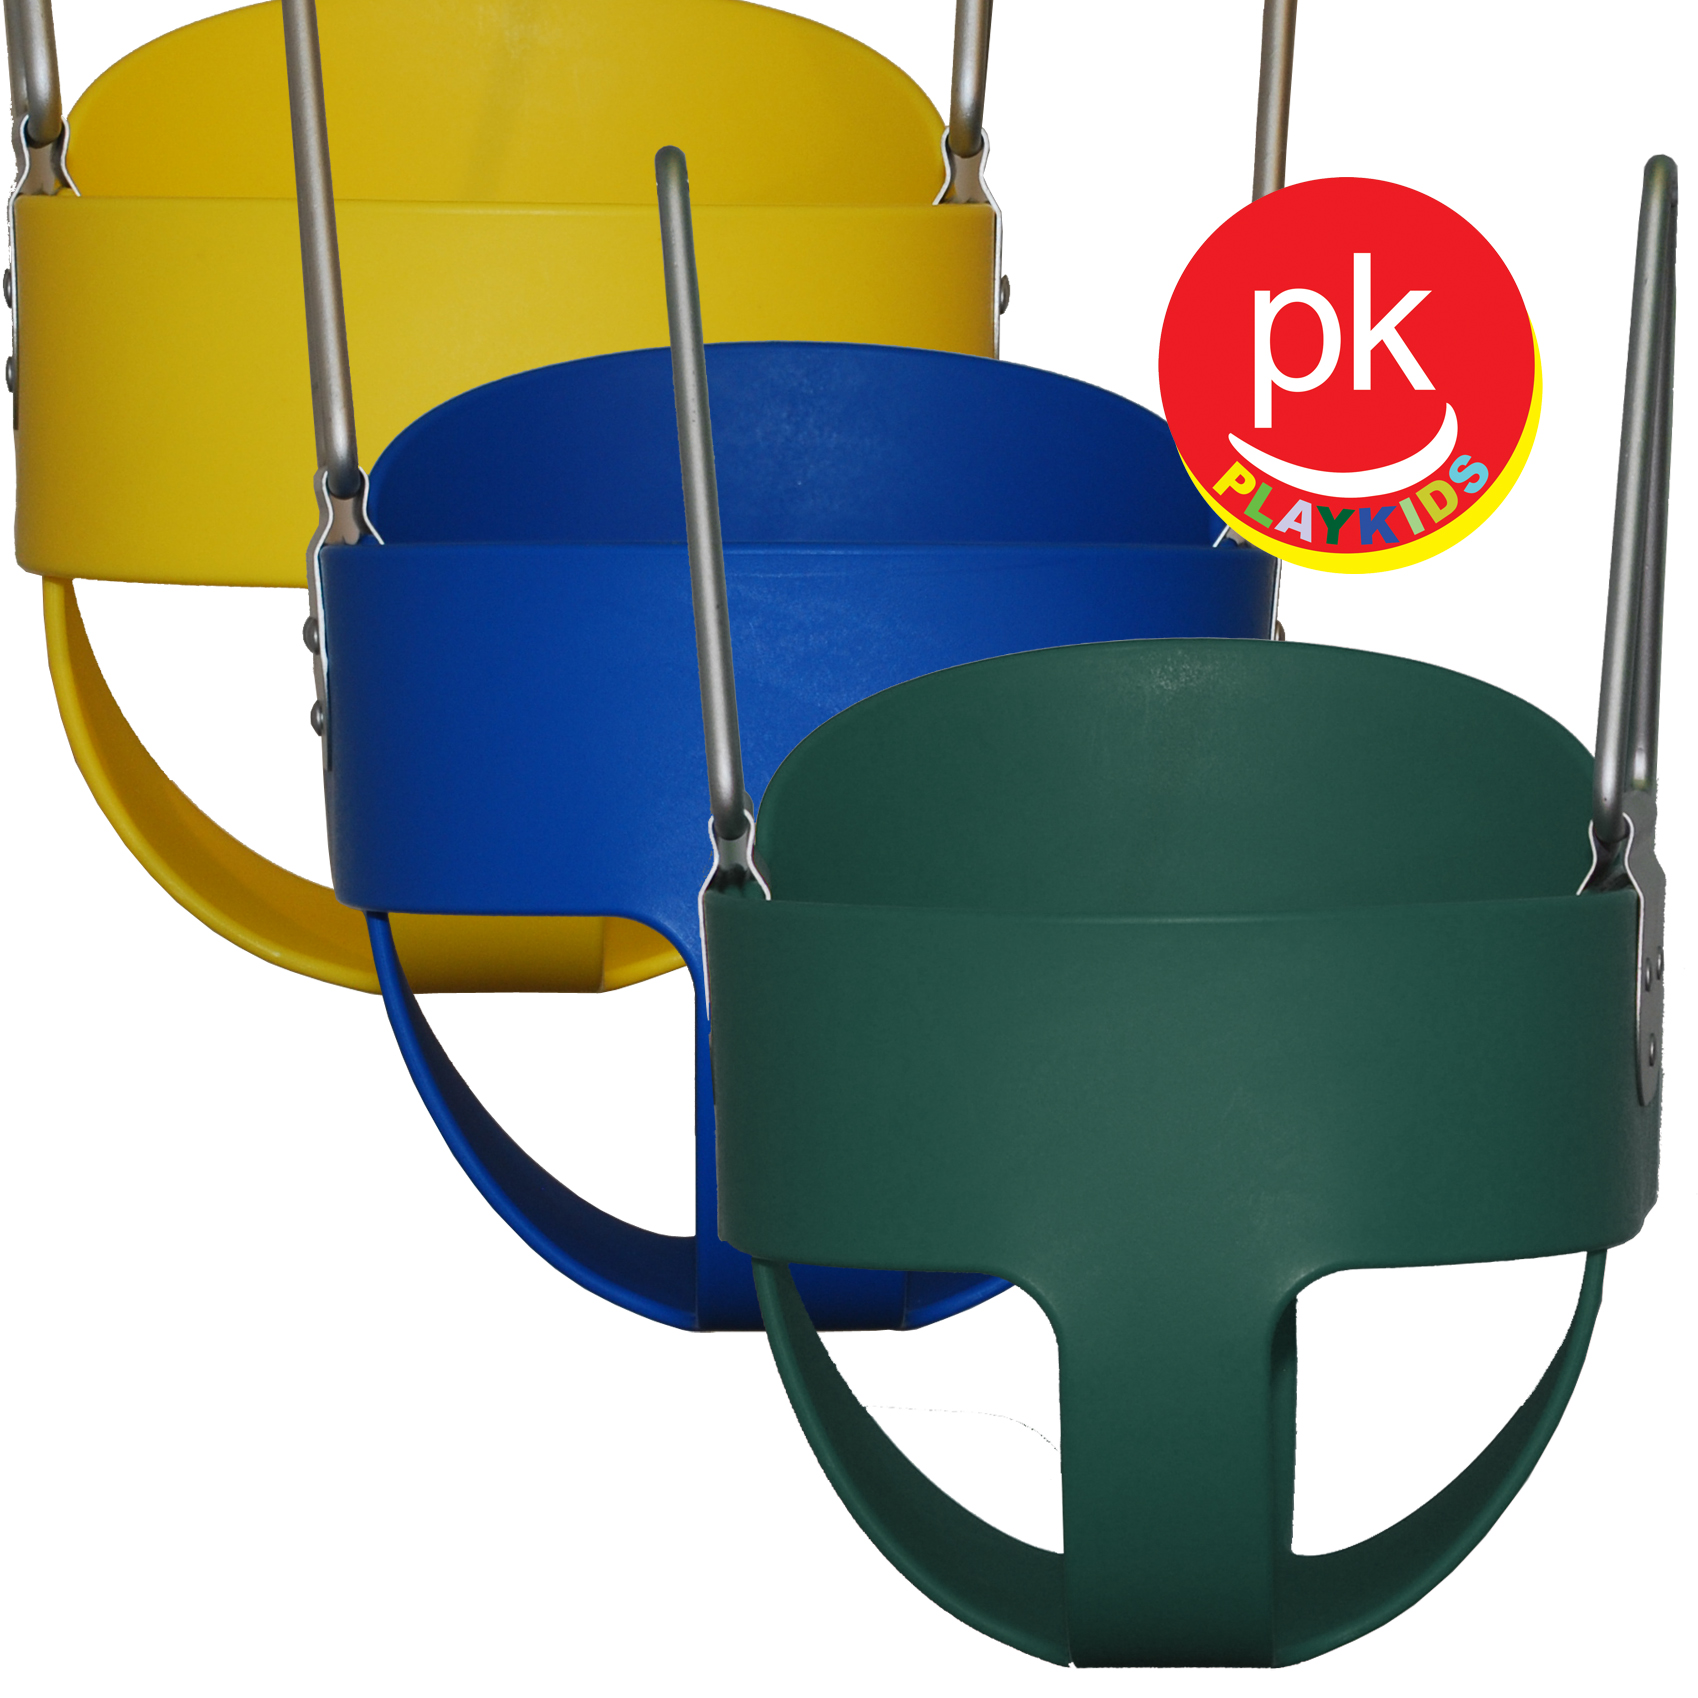 Playkids Toddler Swing Seat For Swing Set Safe Baby Seat Soft For